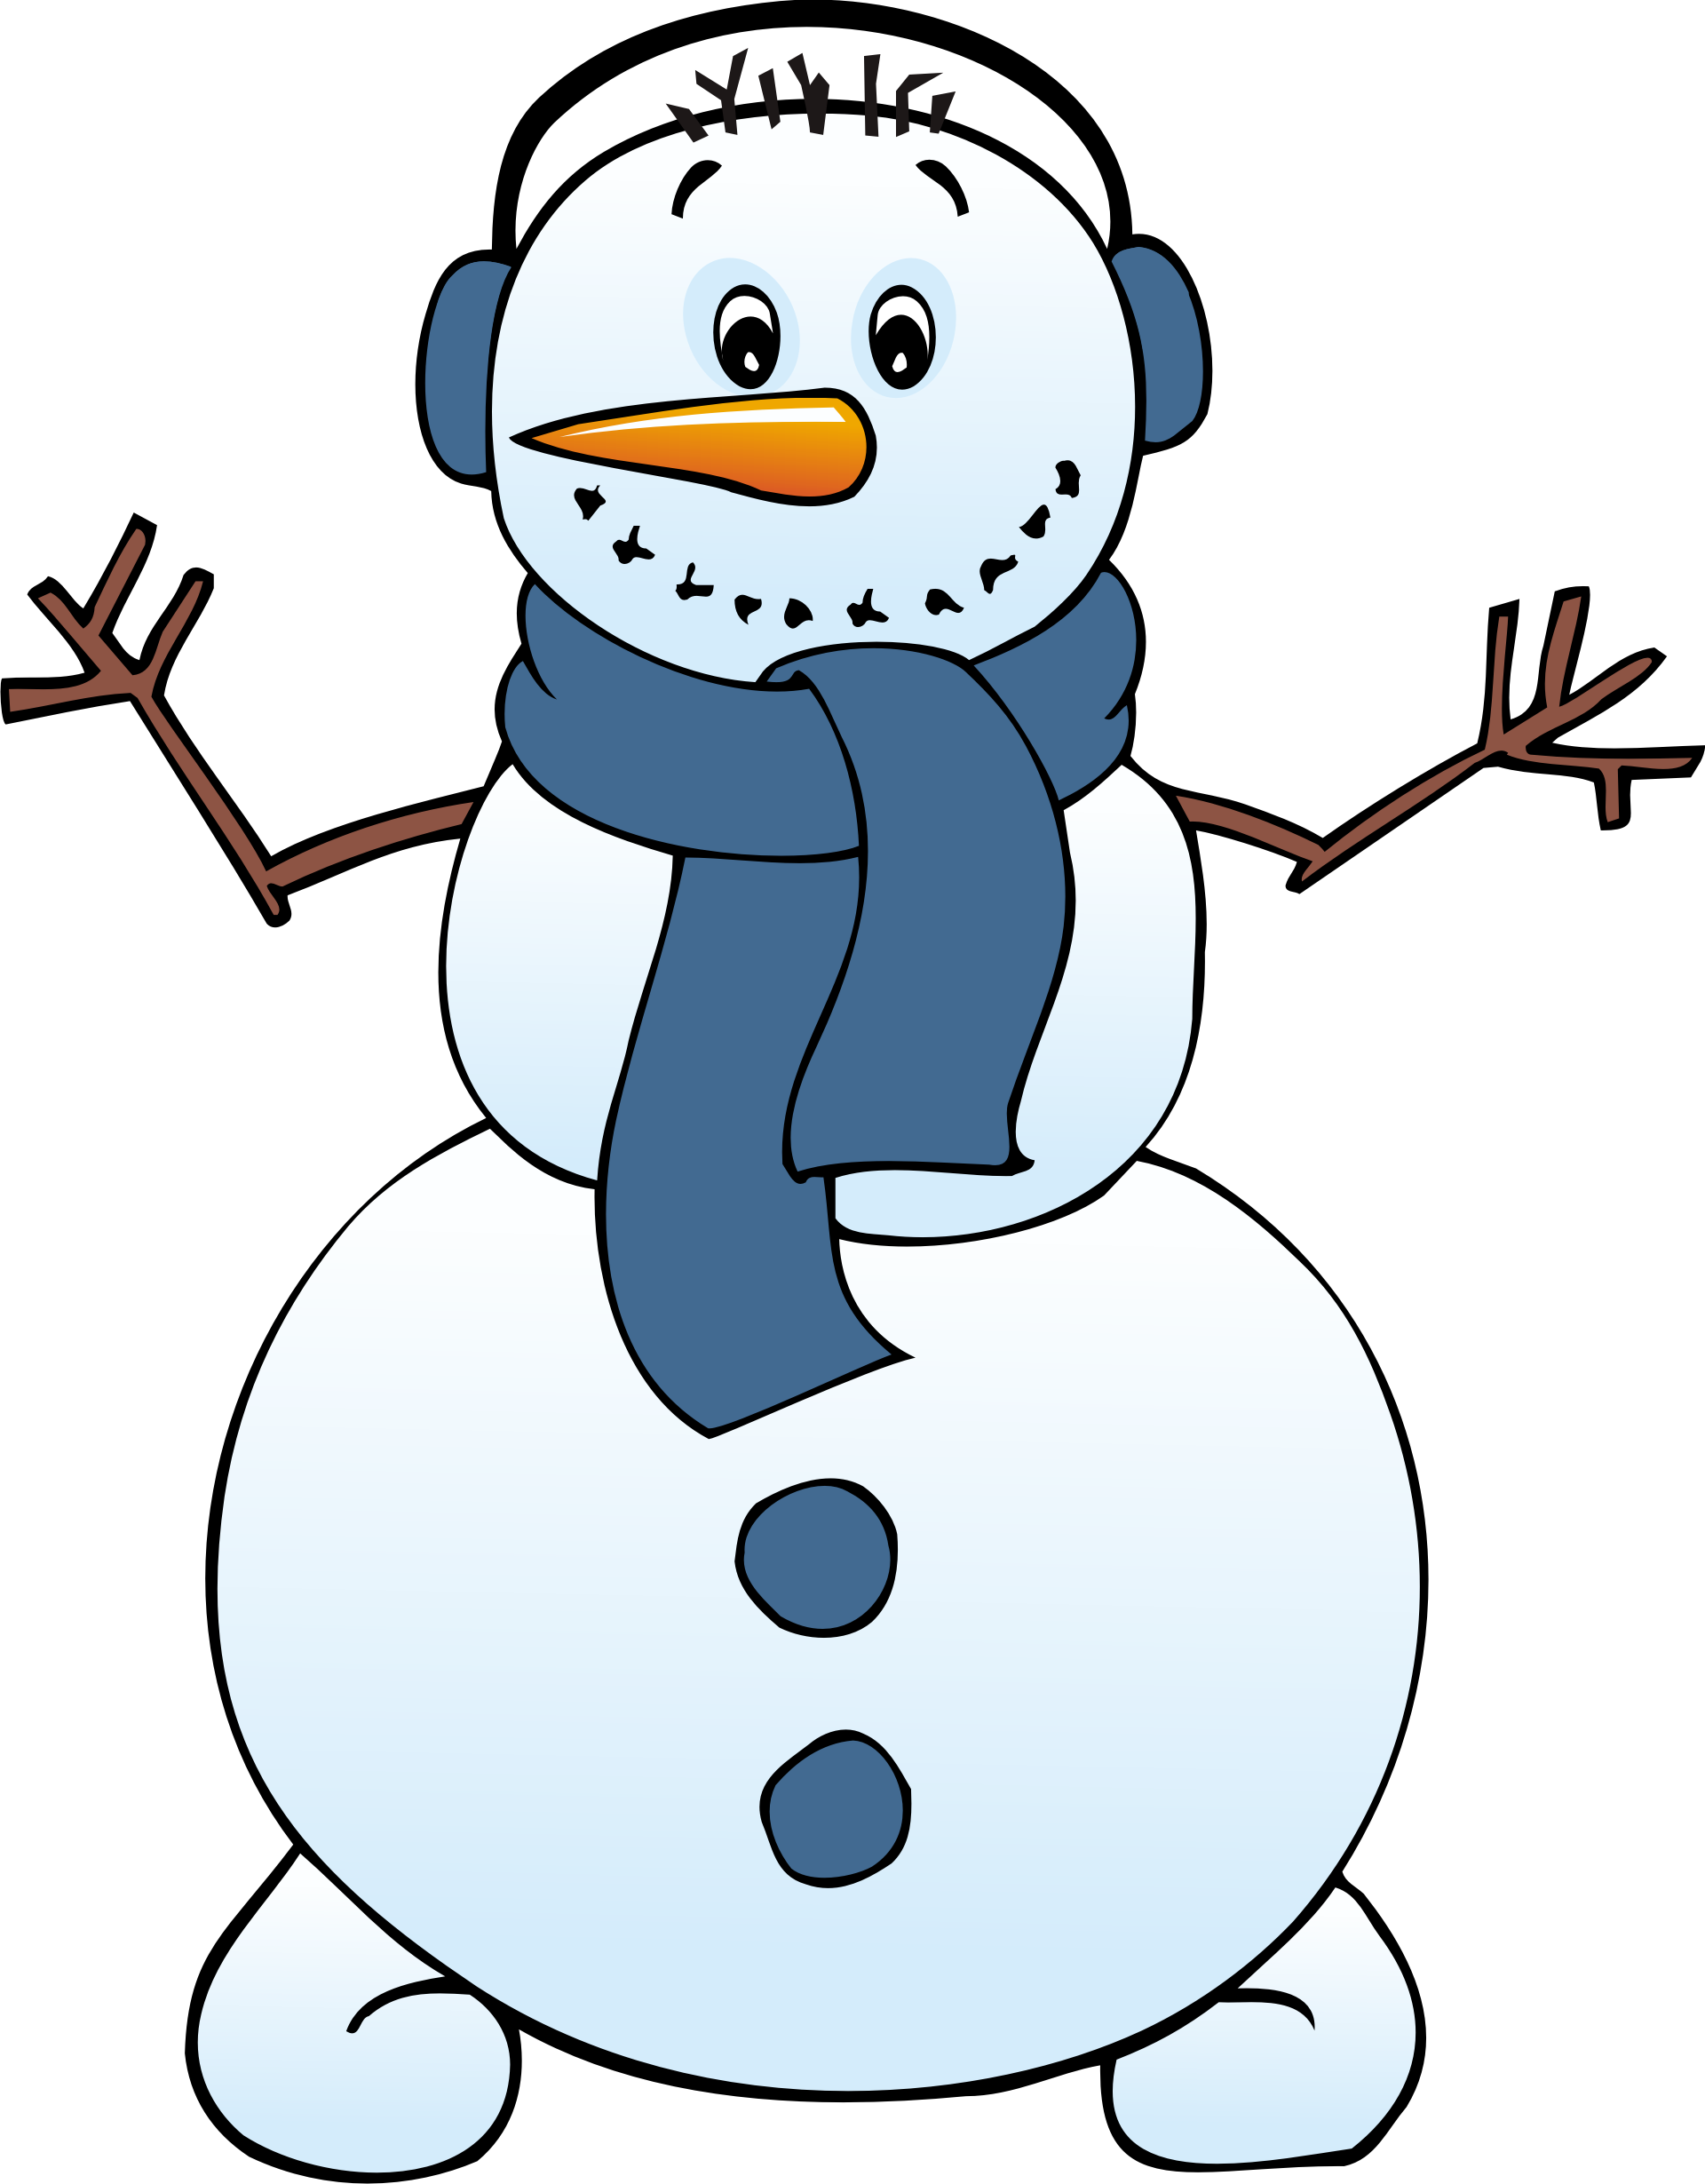 royalty free library Cute Snowman Clip Art